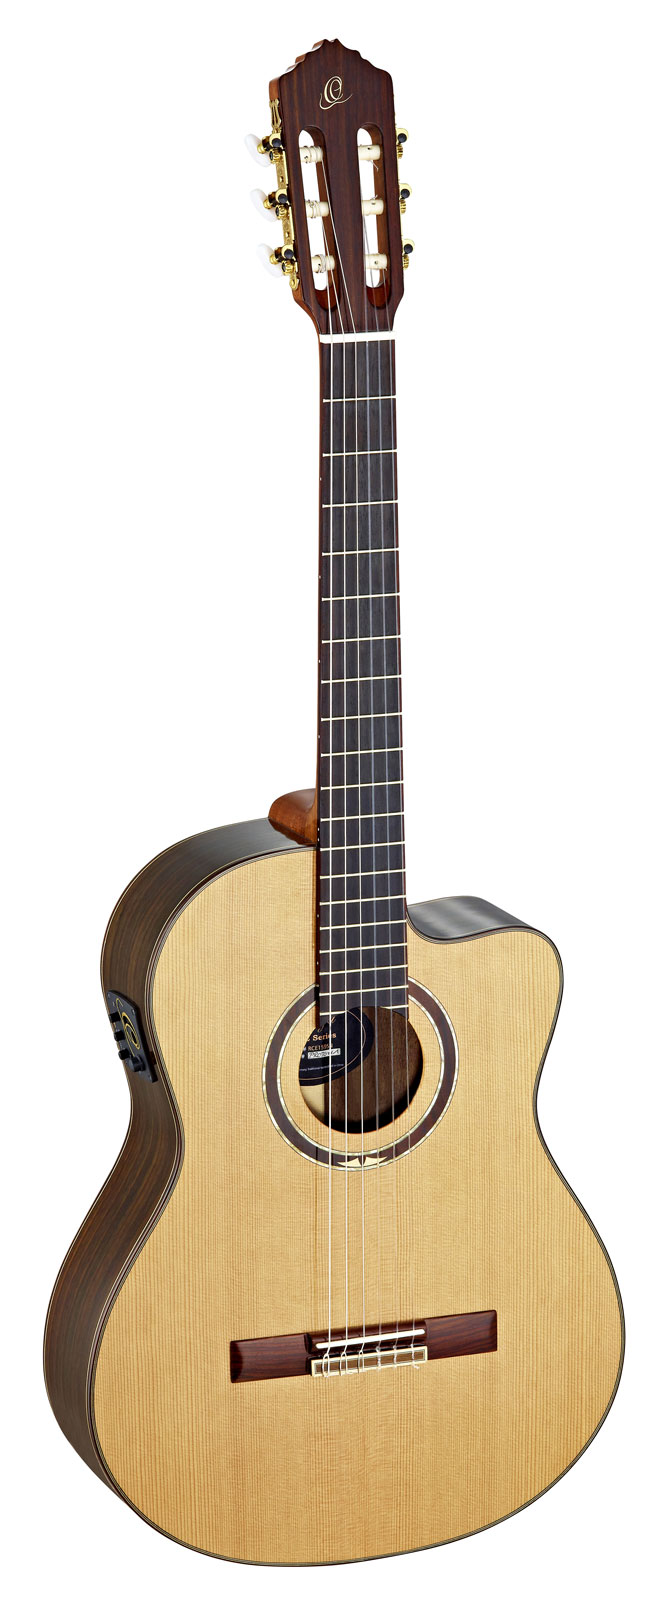 Ortega Rce159 Cedar Medium Neck Natural + Housse